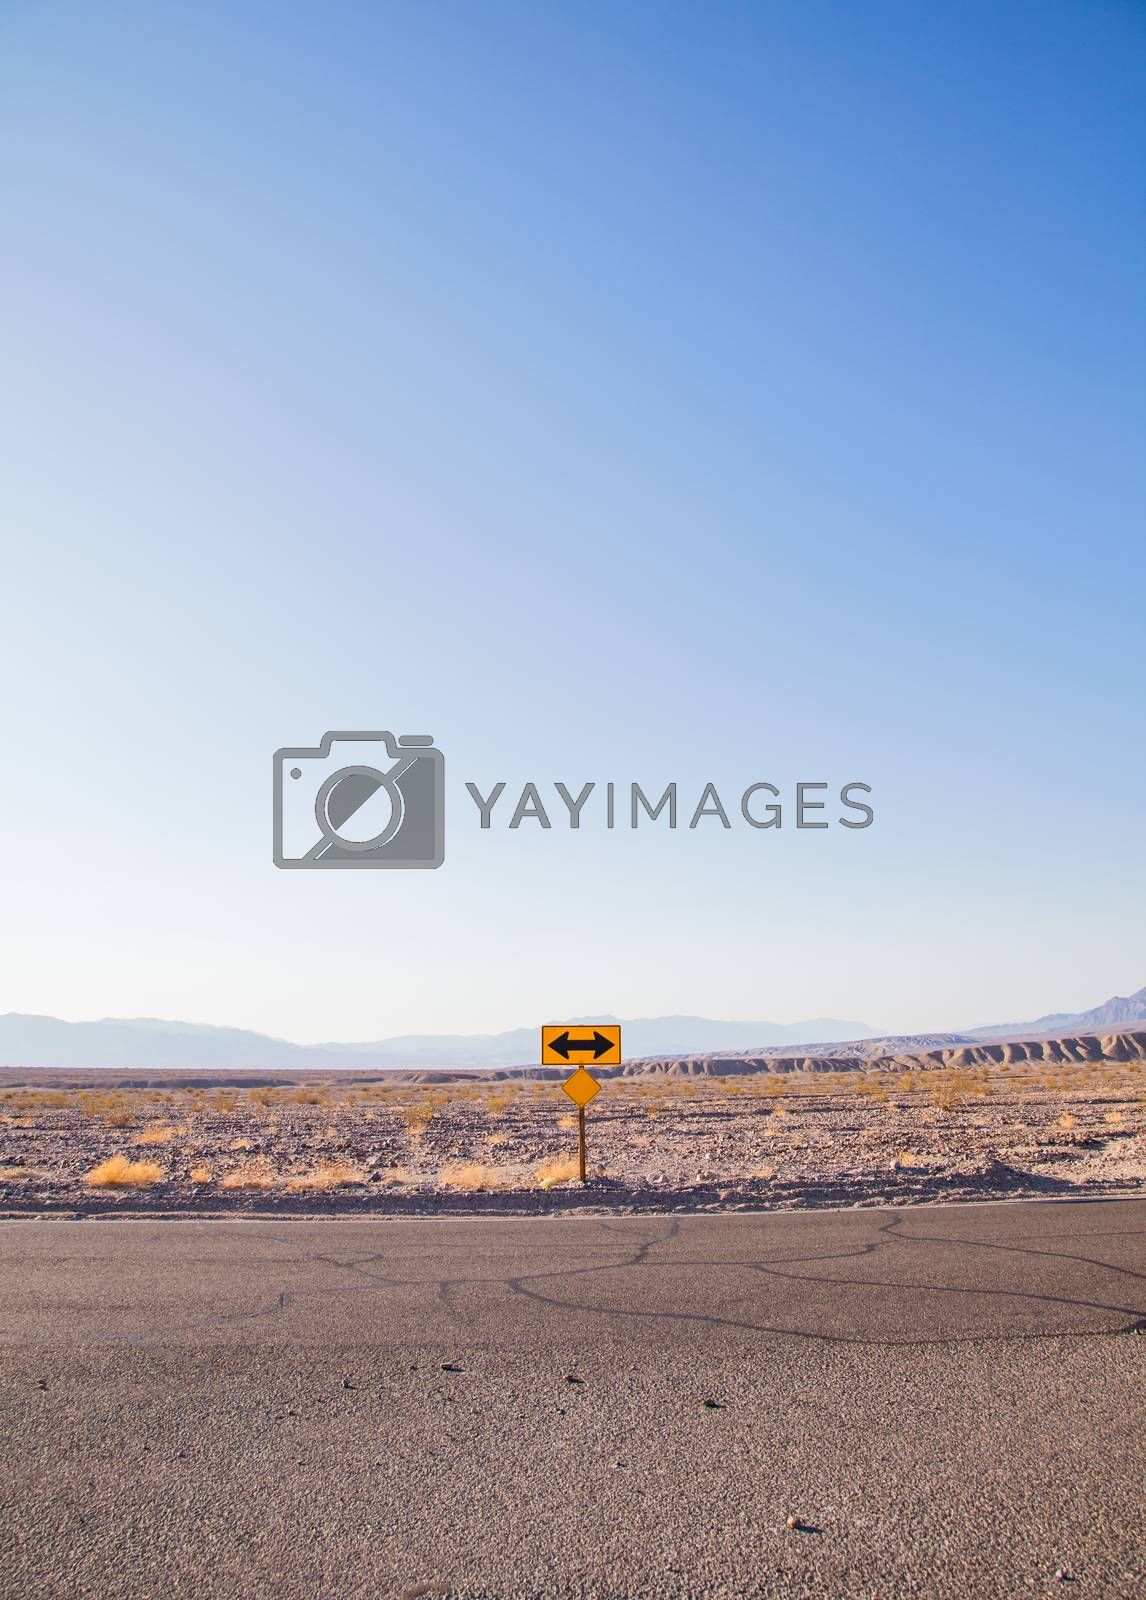 Royalty free image of Directions by Perseomedusa